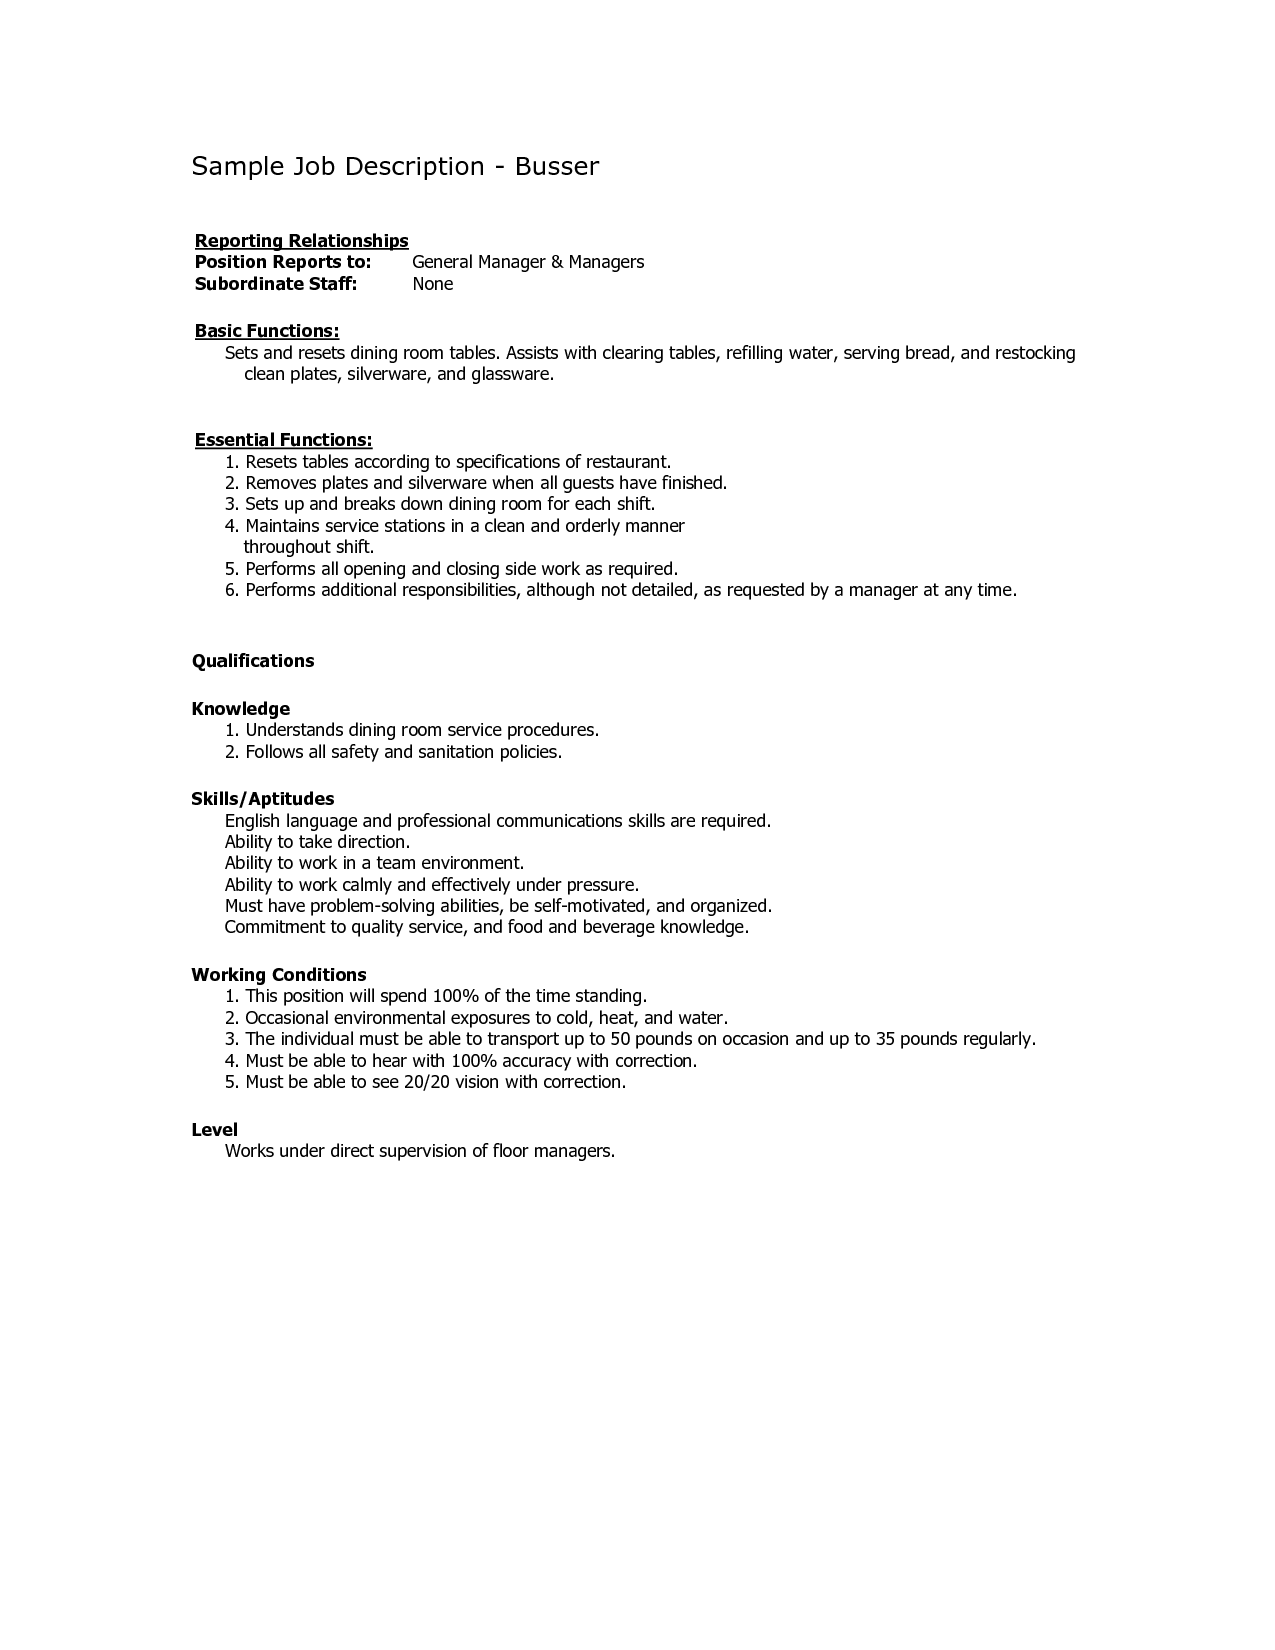 busser resume sample restaurant busser job description for resume. Resume Example. Resume CV Cover Letter